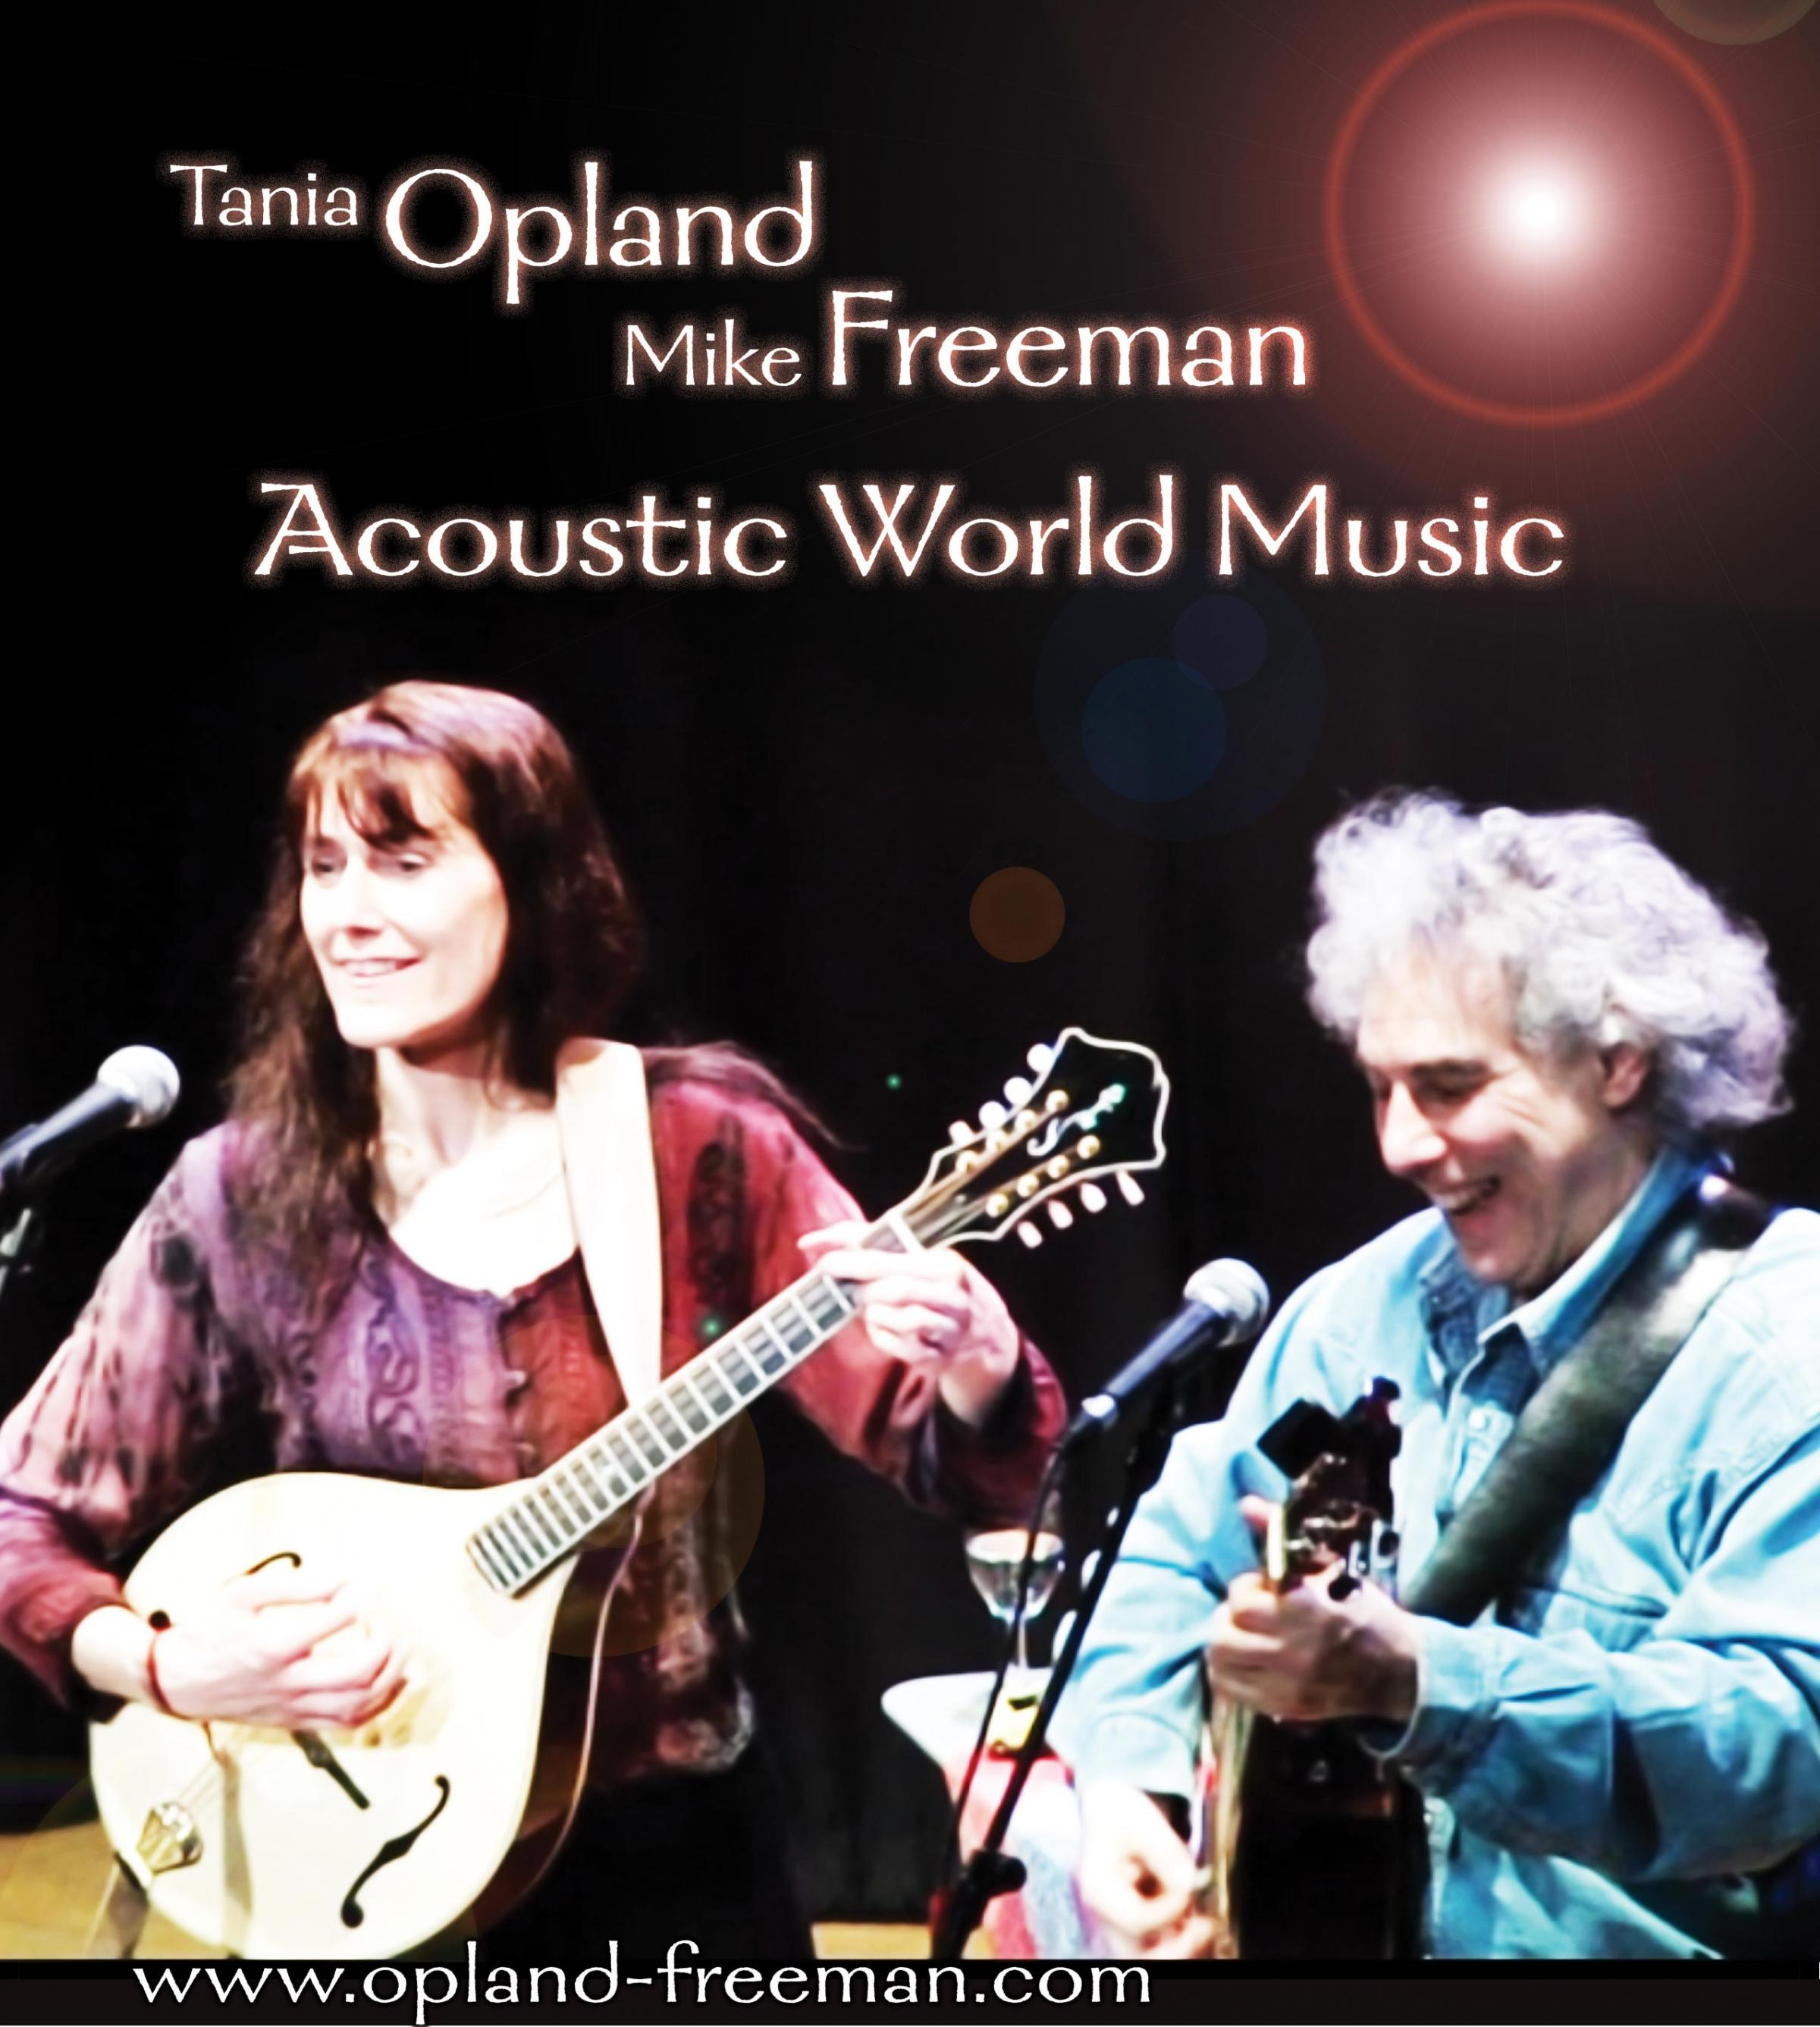 Acoustic World Music